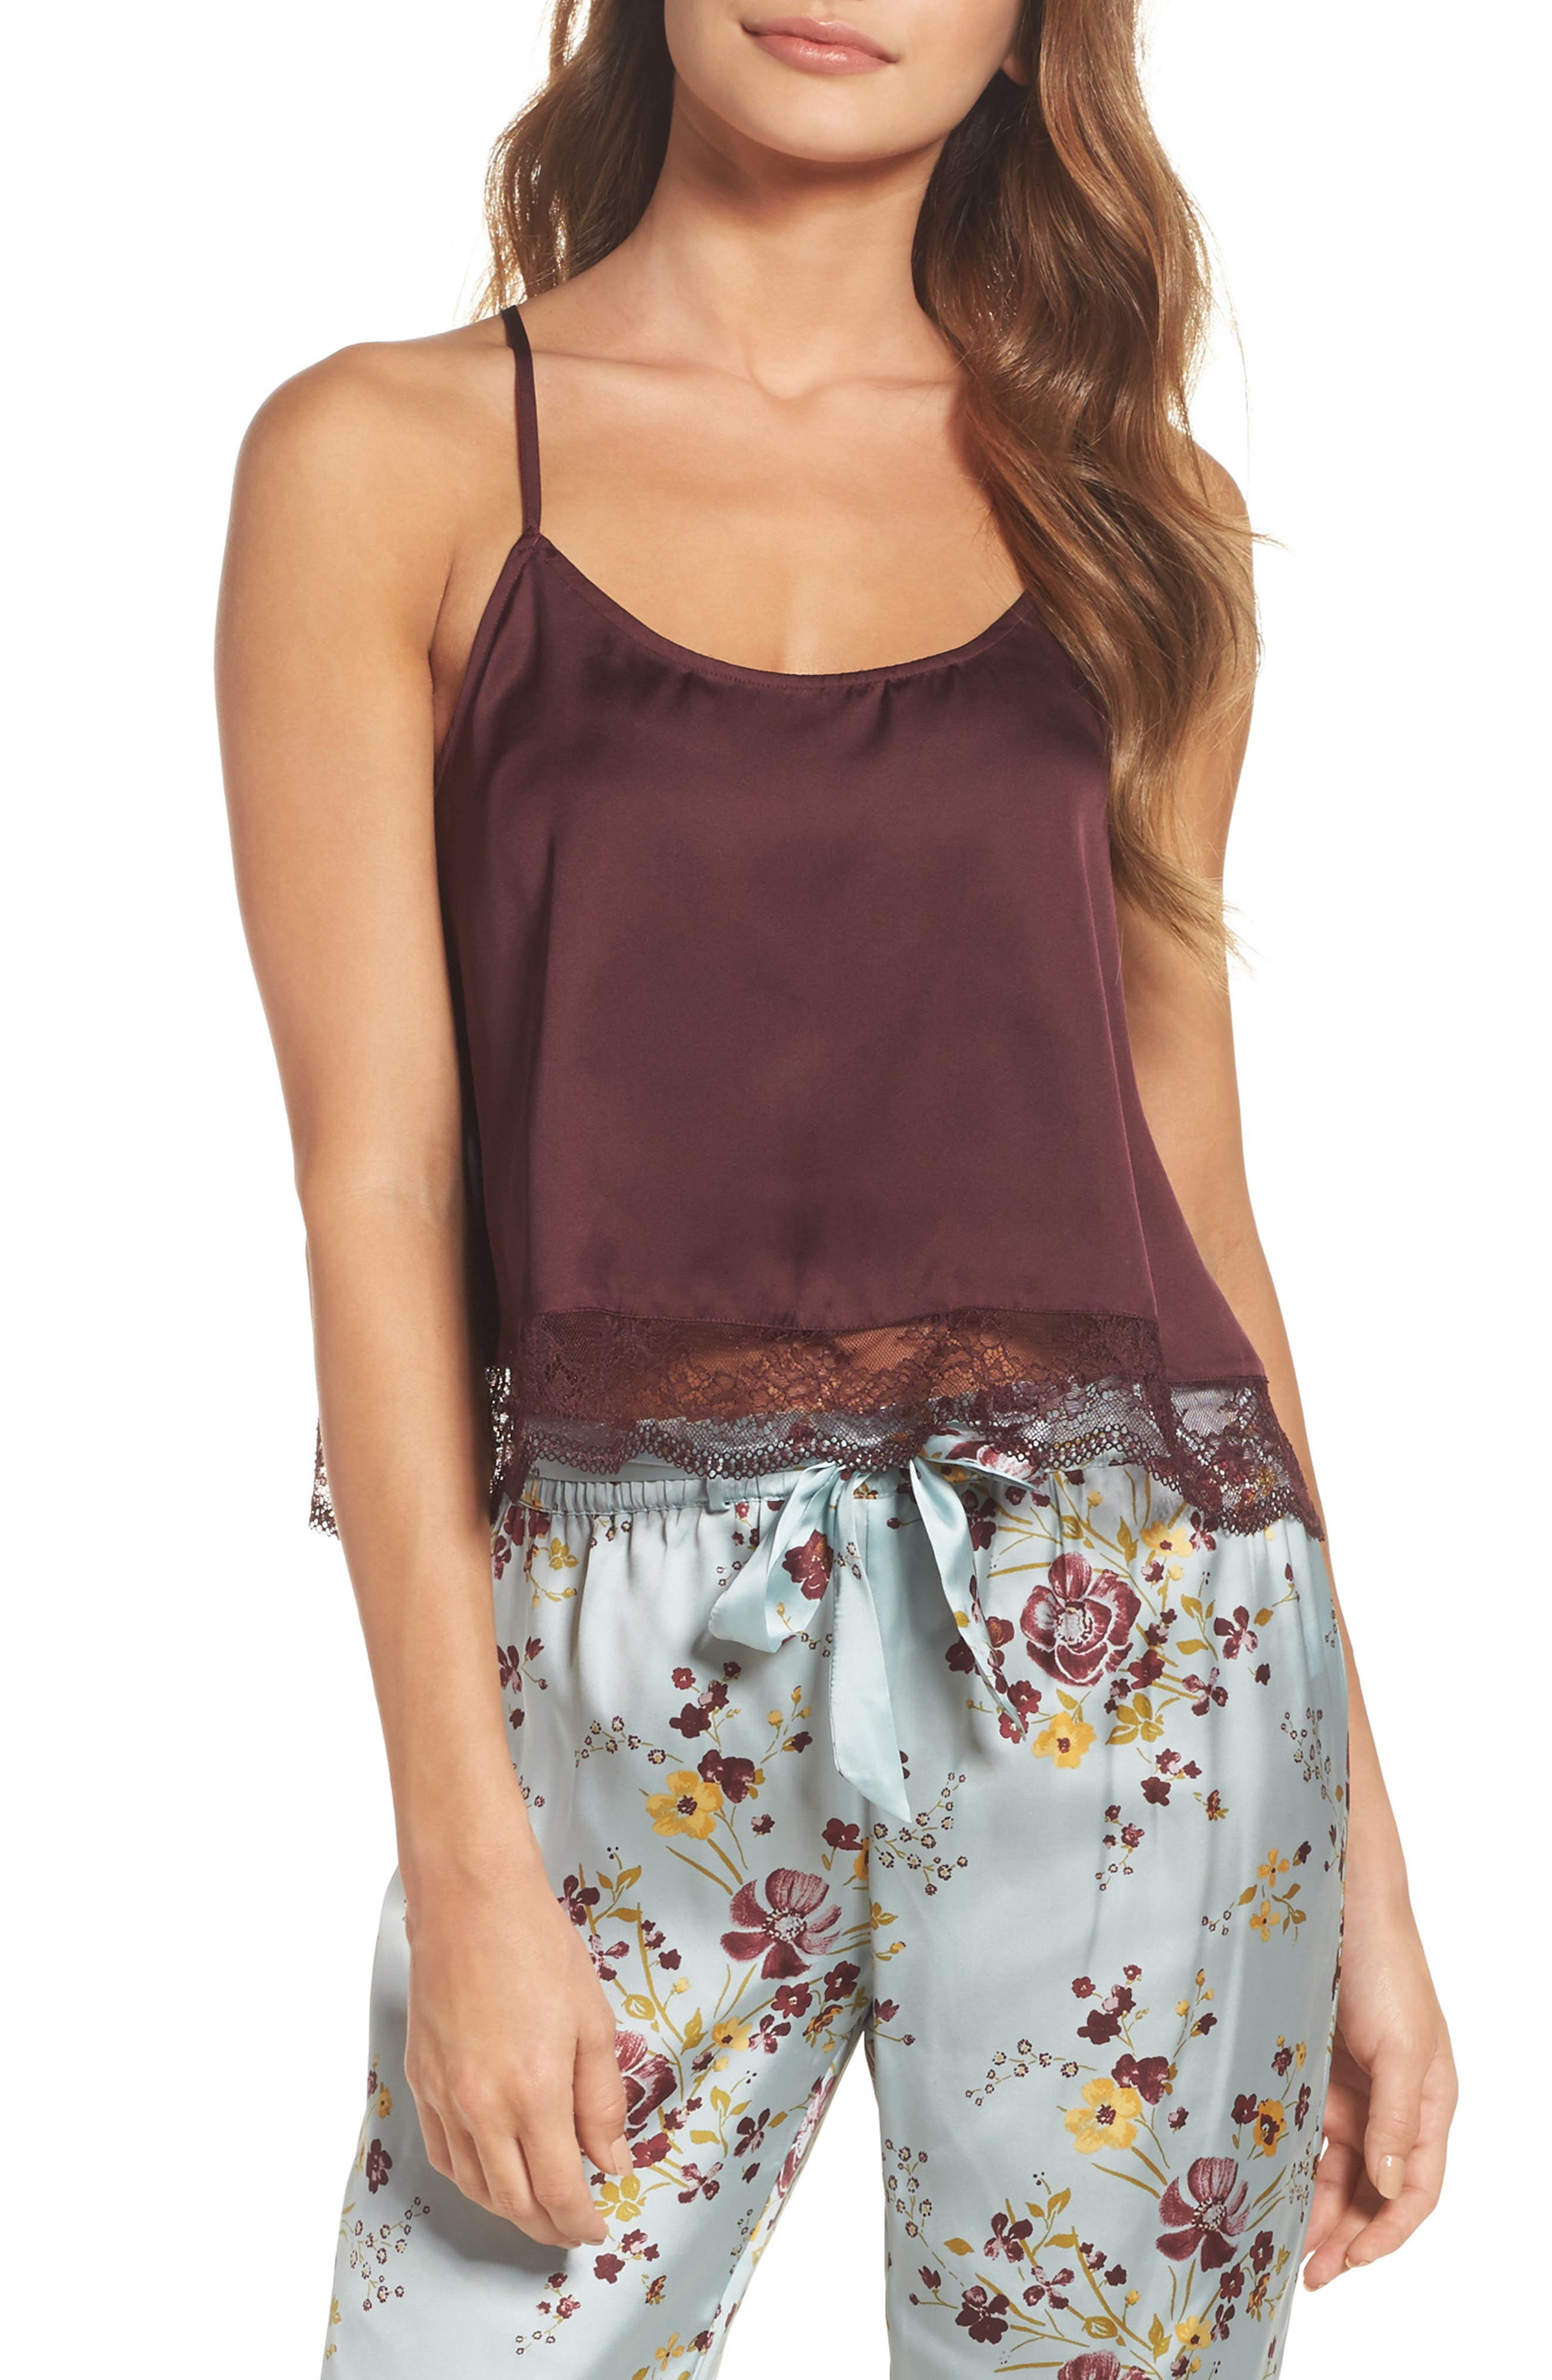 In My Dreams Lace Trim Camisole,                         Main,                         color, Burgundy Stem